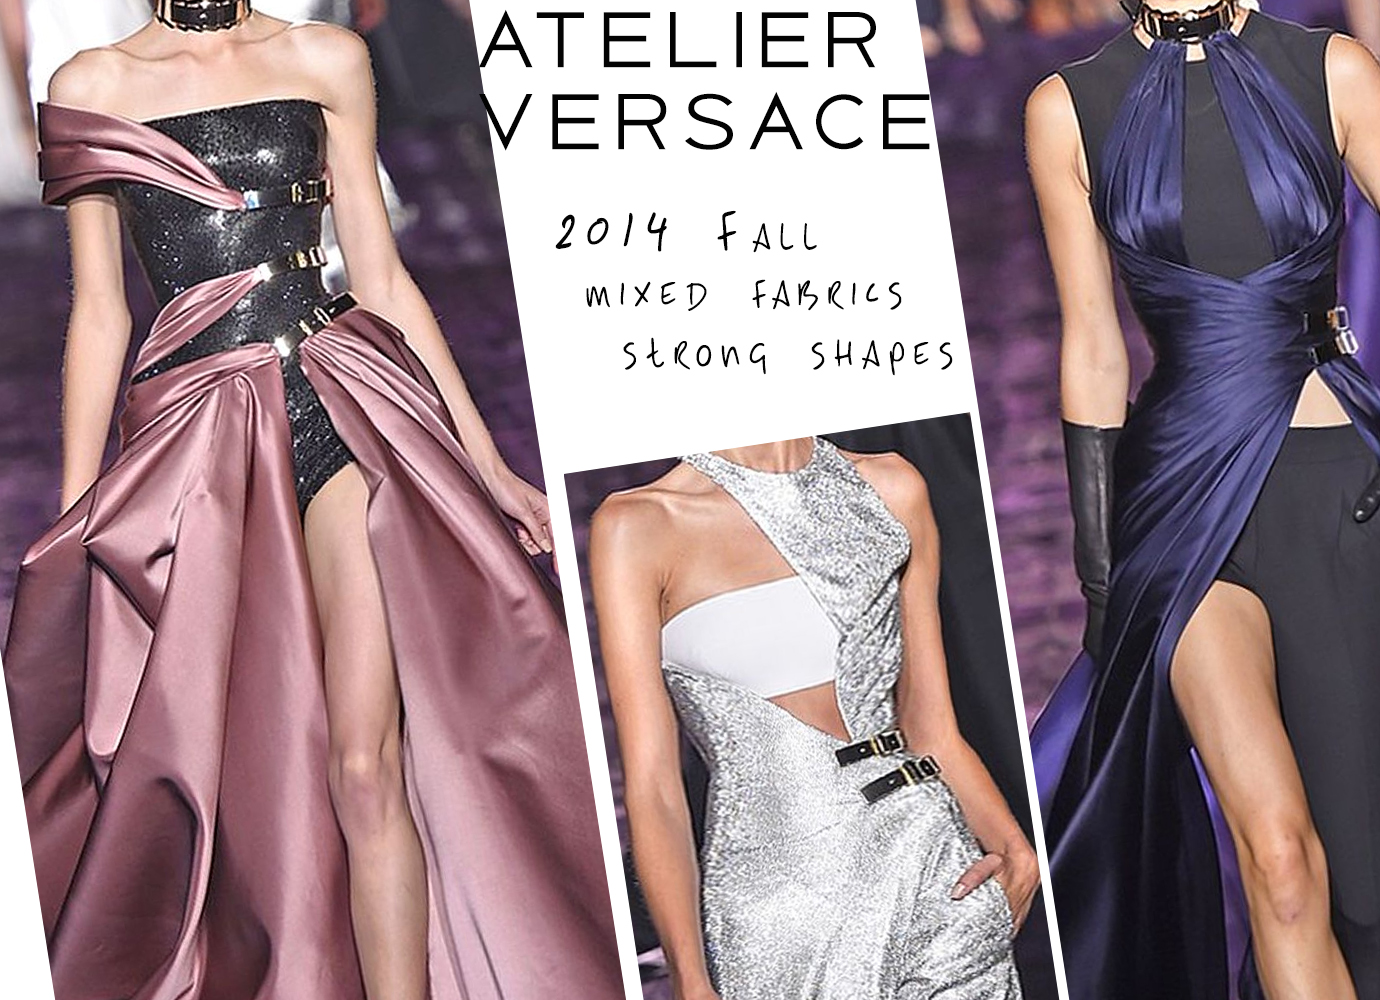 Things that should have been worn to the Met Gala Atelier Versace